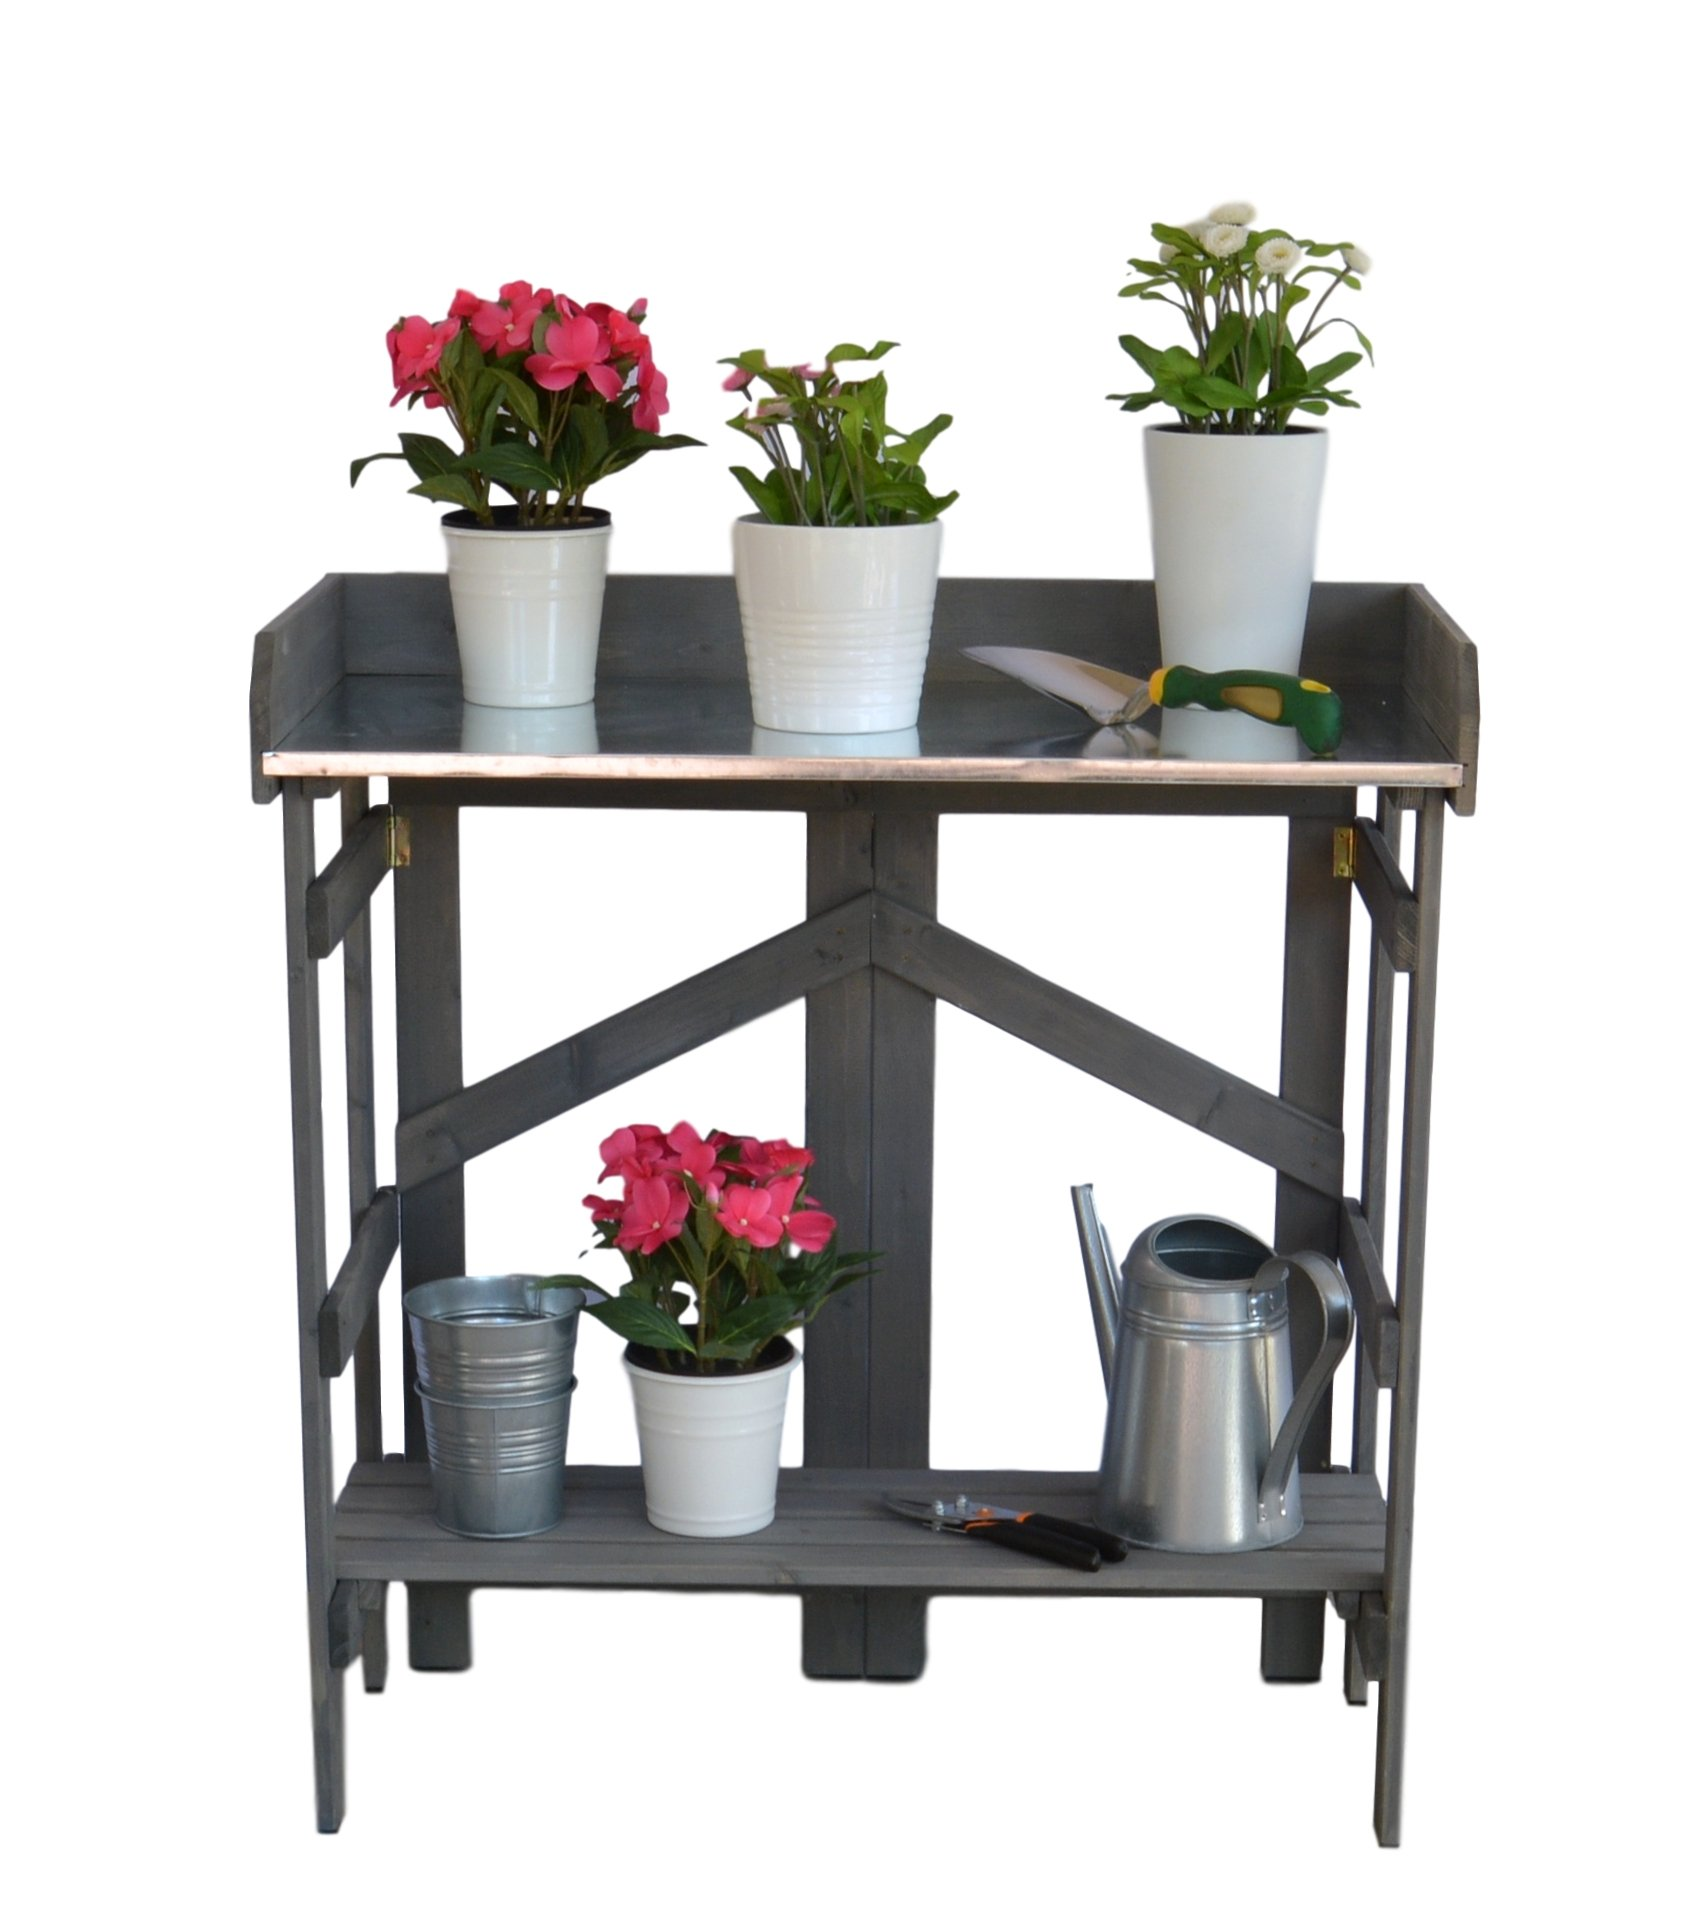 Vytal Folding Potting Bench Event Table Gray Ideal For Outdoor Gardening Or